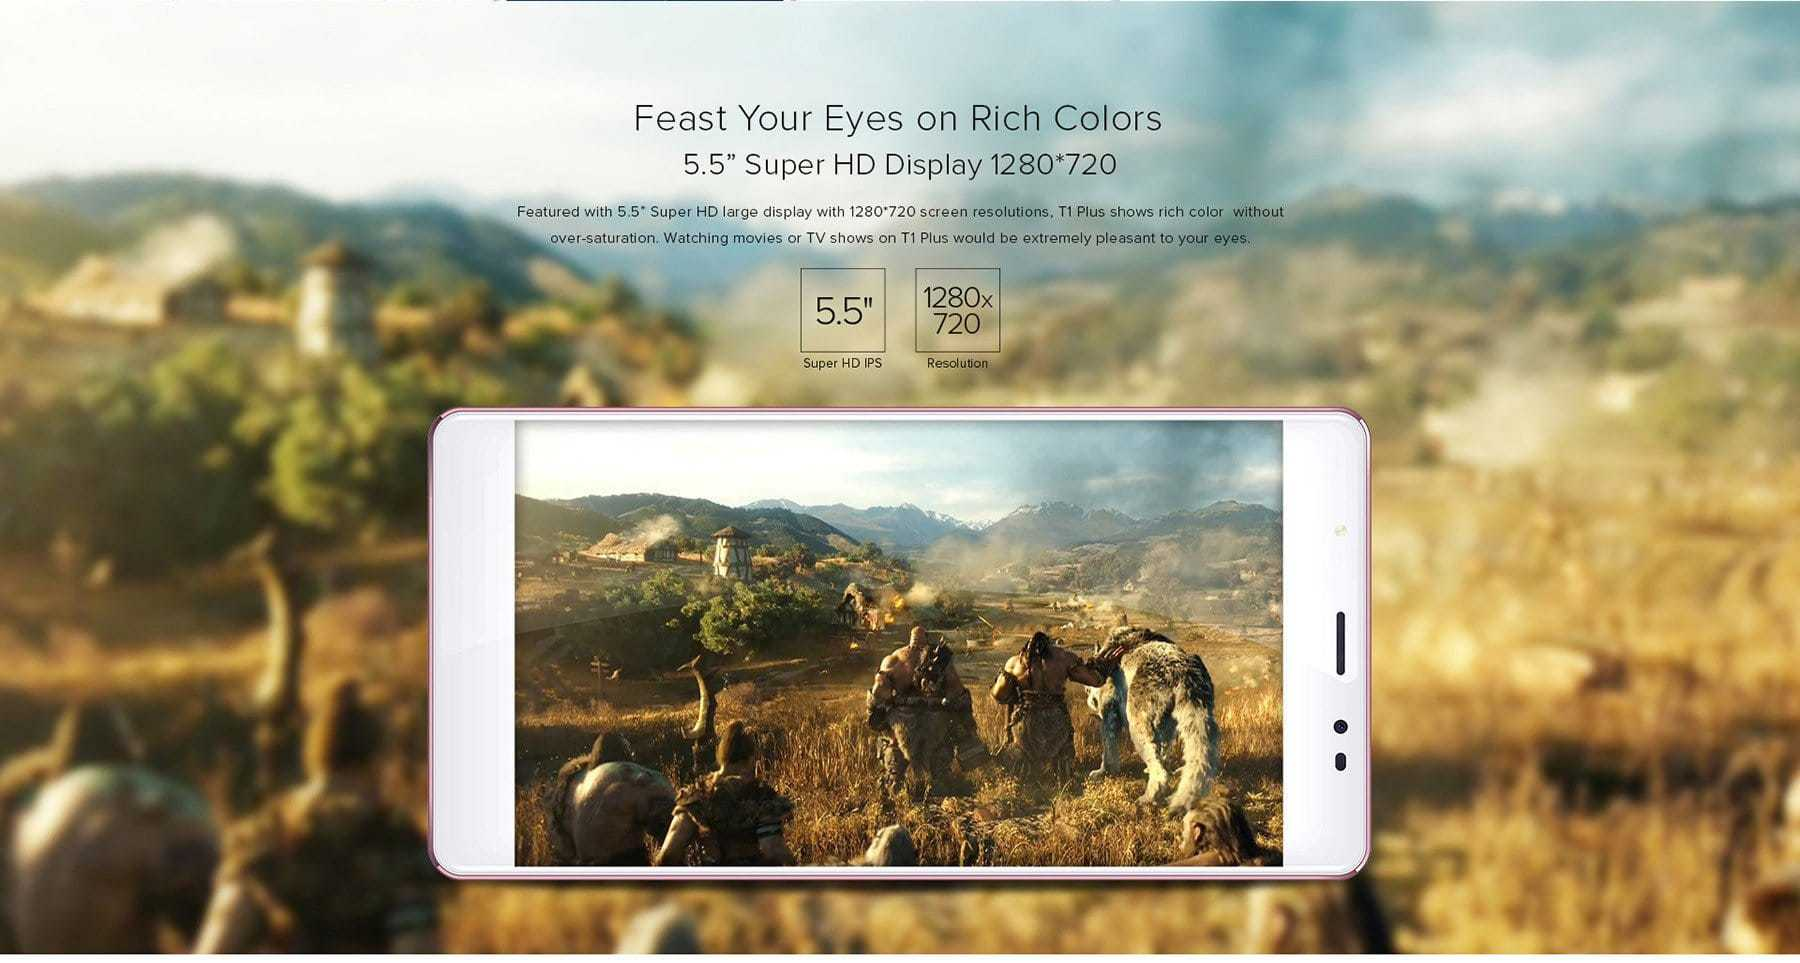 Leagoo-t1-plus-4g-phablet-launched